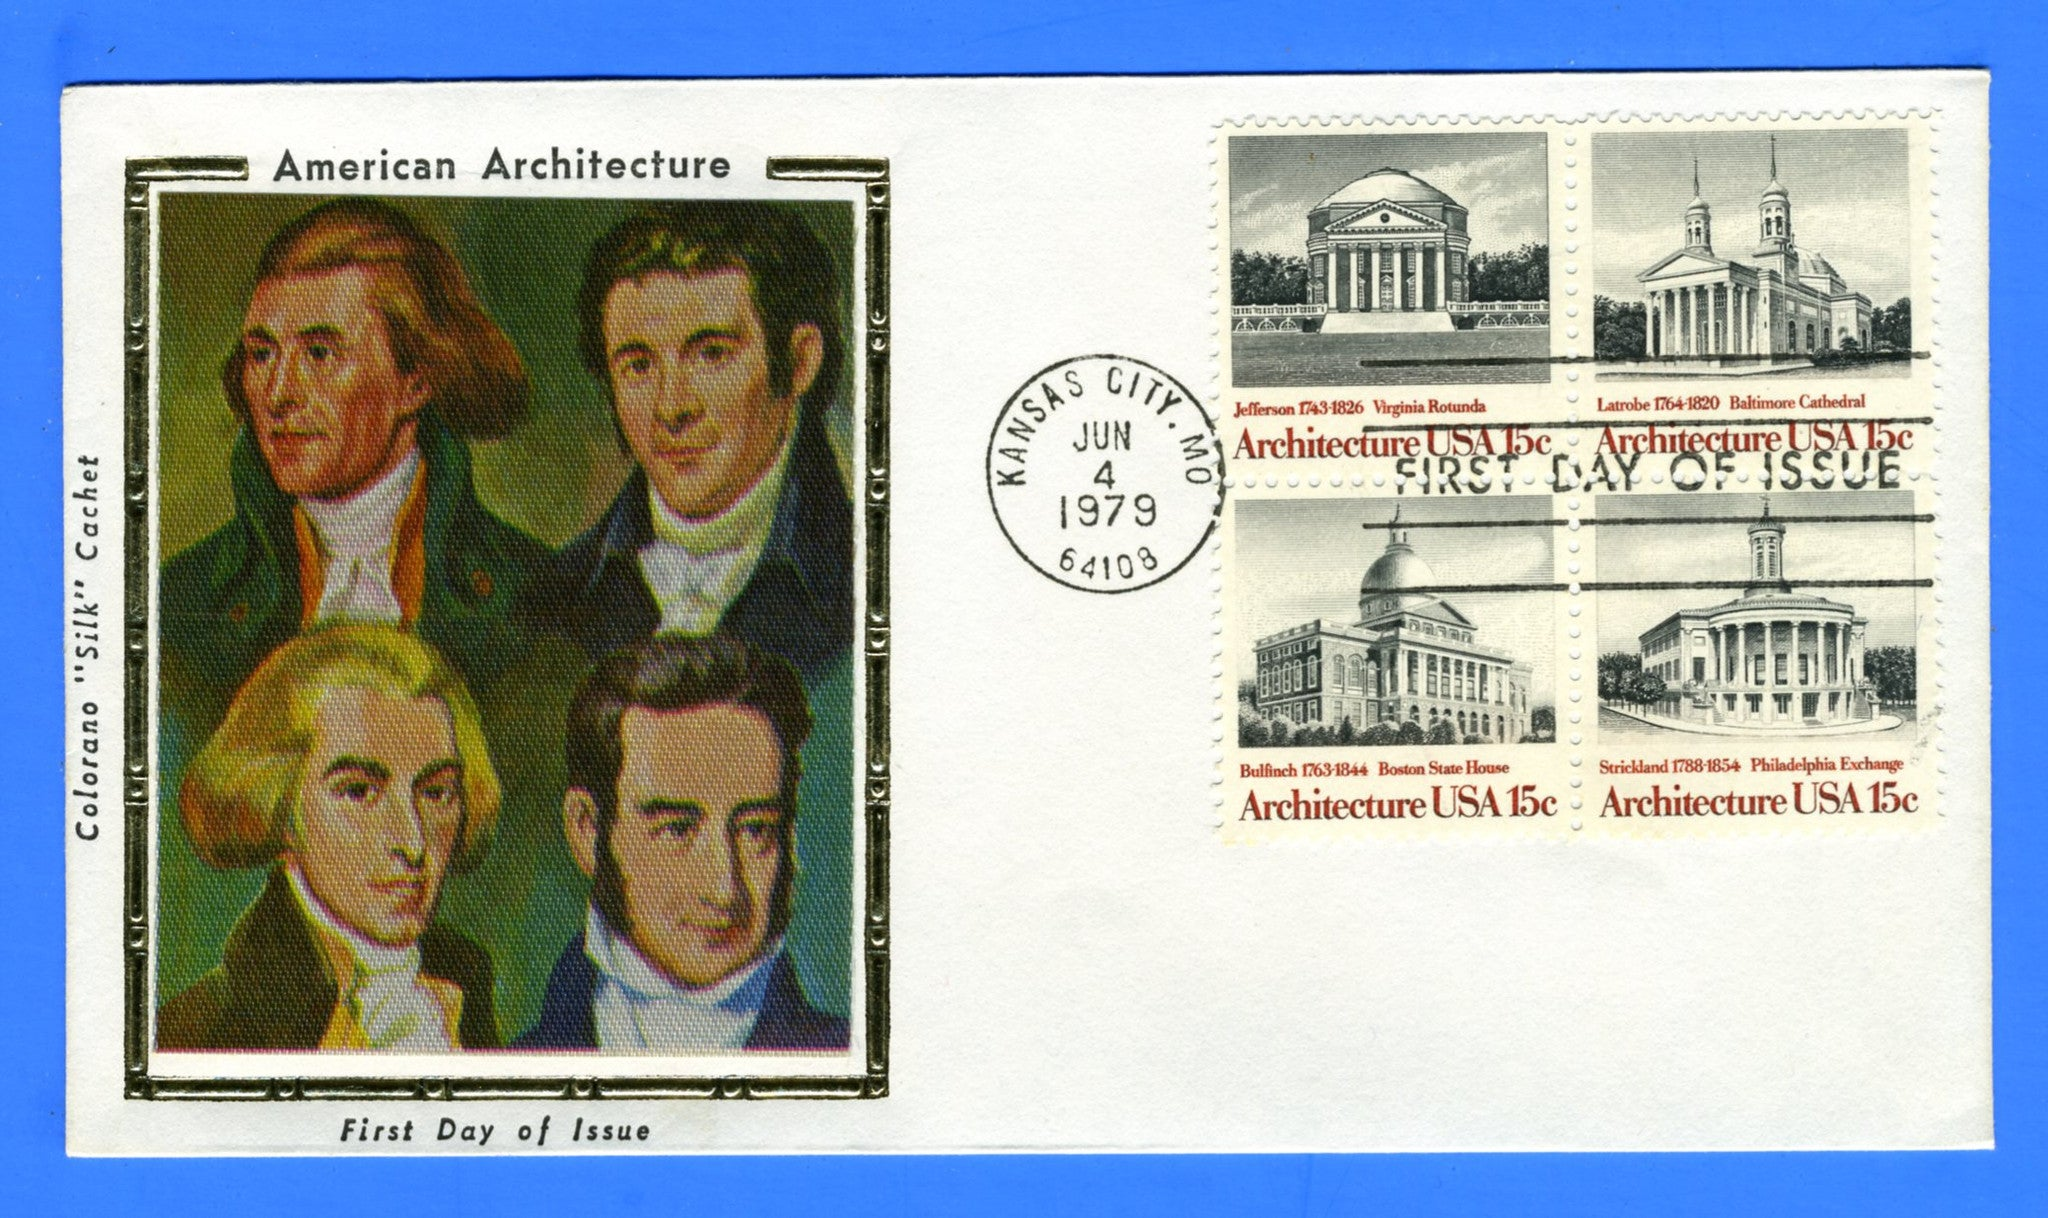 Scott 1782a 15c American Architecture First Day Cover by Colorano